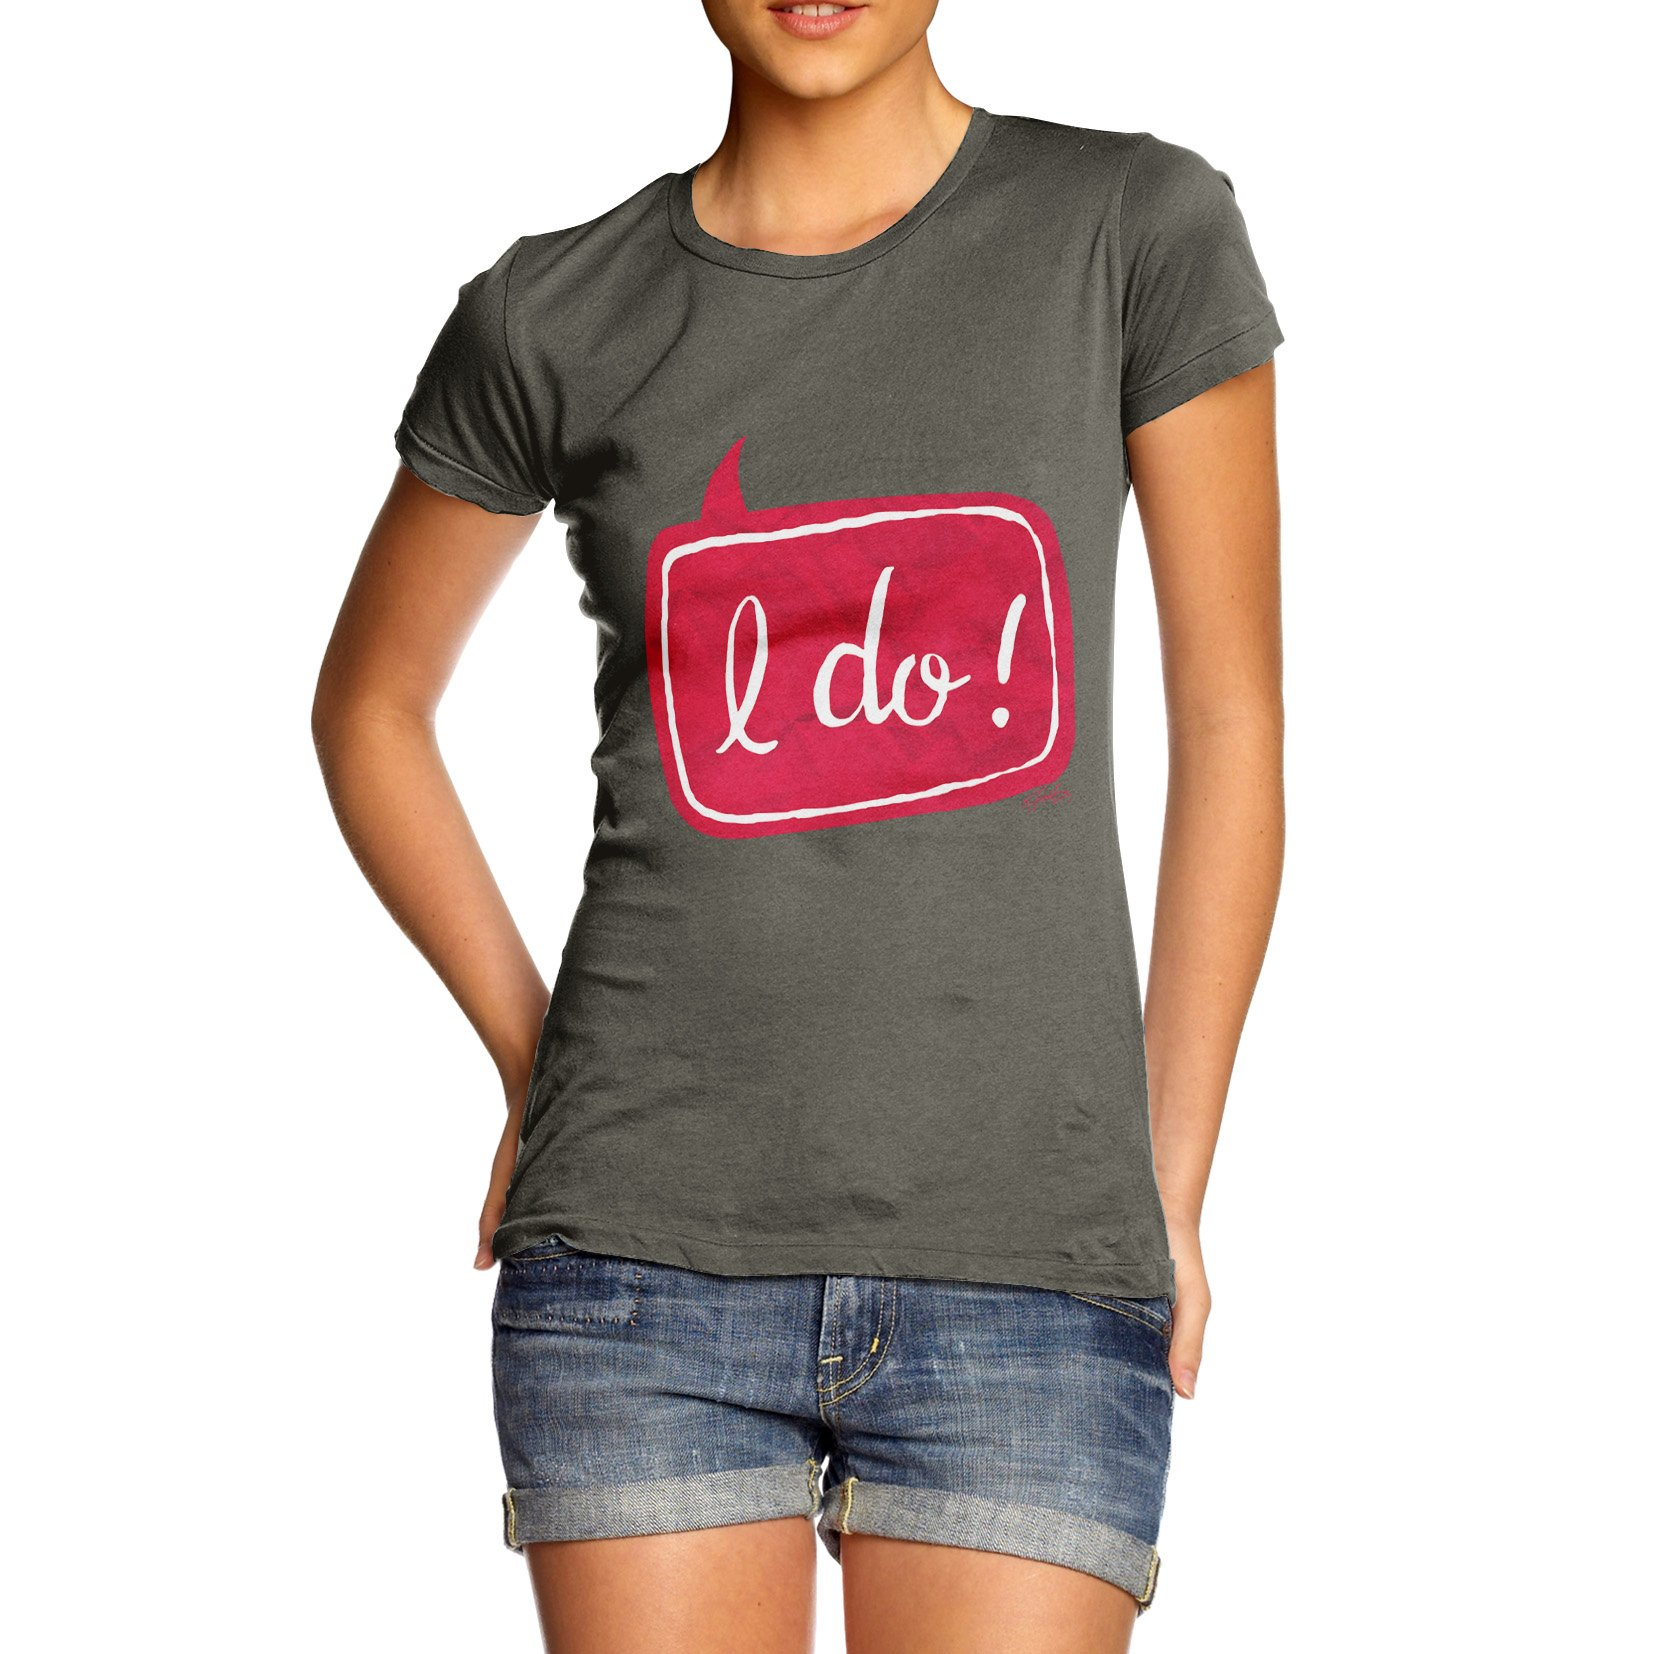 Women's I Do! Wedding 100% Cotton T-Shirt, Crew Neck, Comfortable and Soft Classic Tee with Unique Design Small Khaki